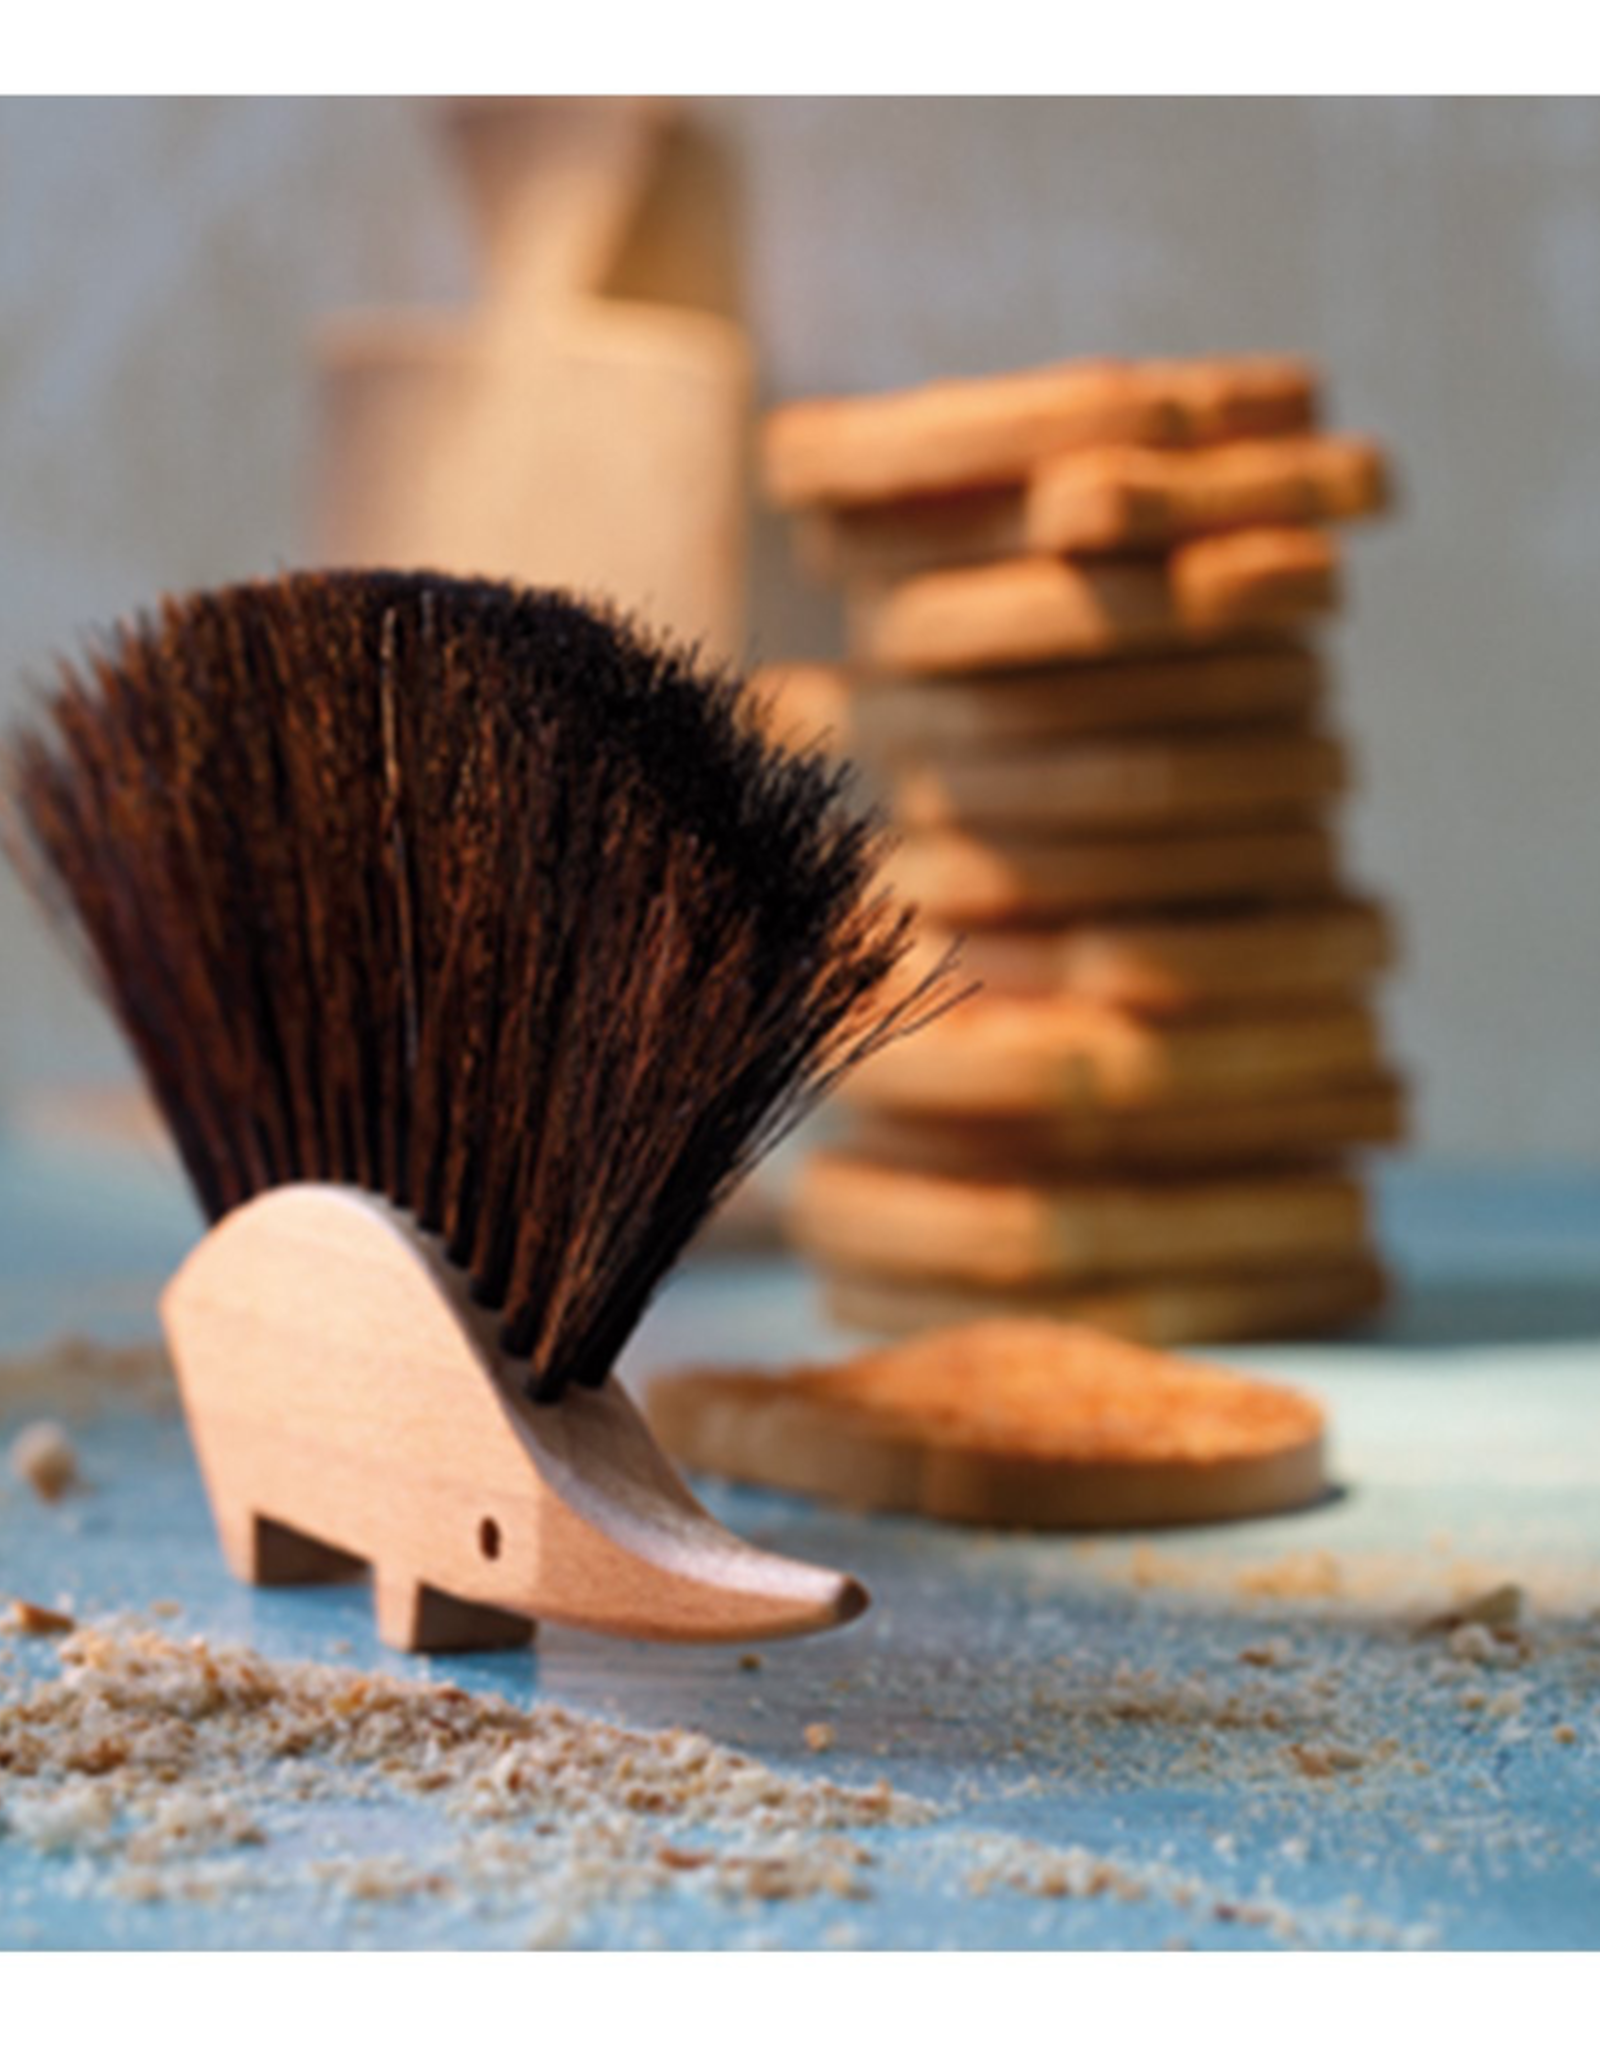 Redecker Redecker Hedgehog Table Brush